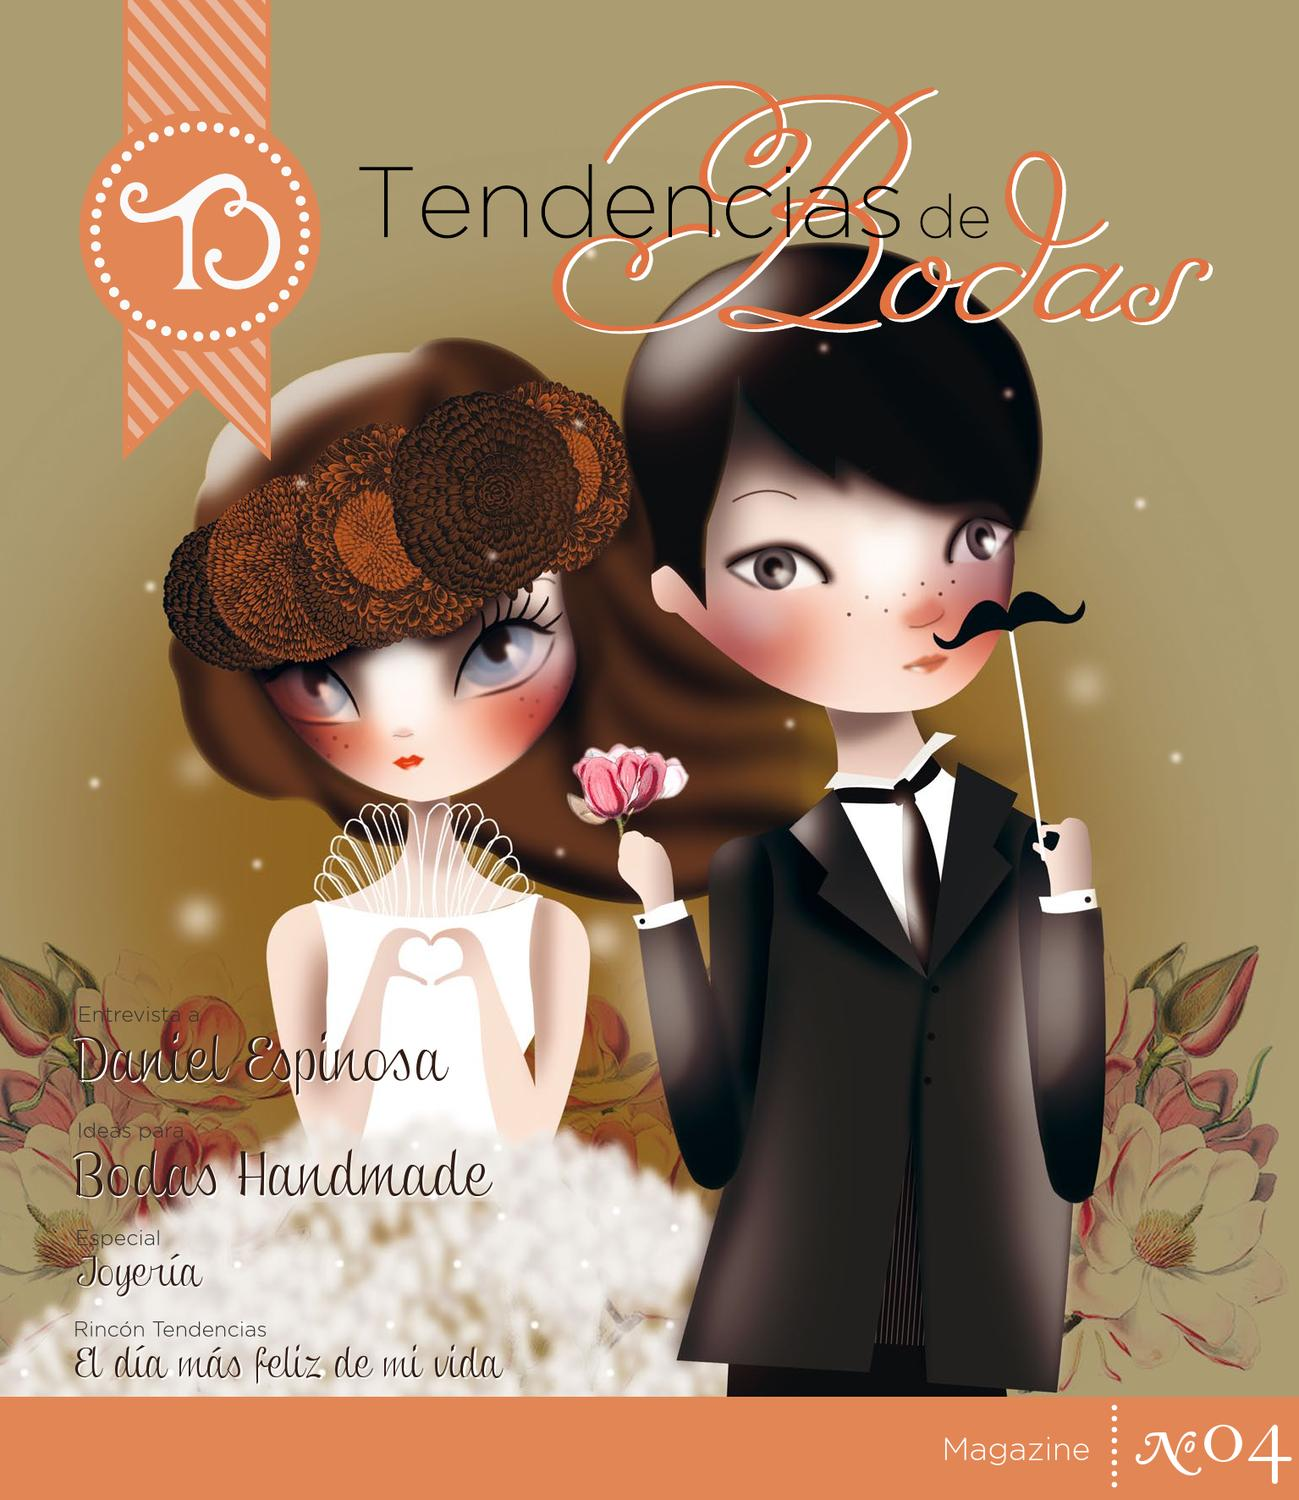 Nº04 Tendencias de Bodas Magazine (Oct 12) by Tendencias de Bodas - issuu fec8976060cf0